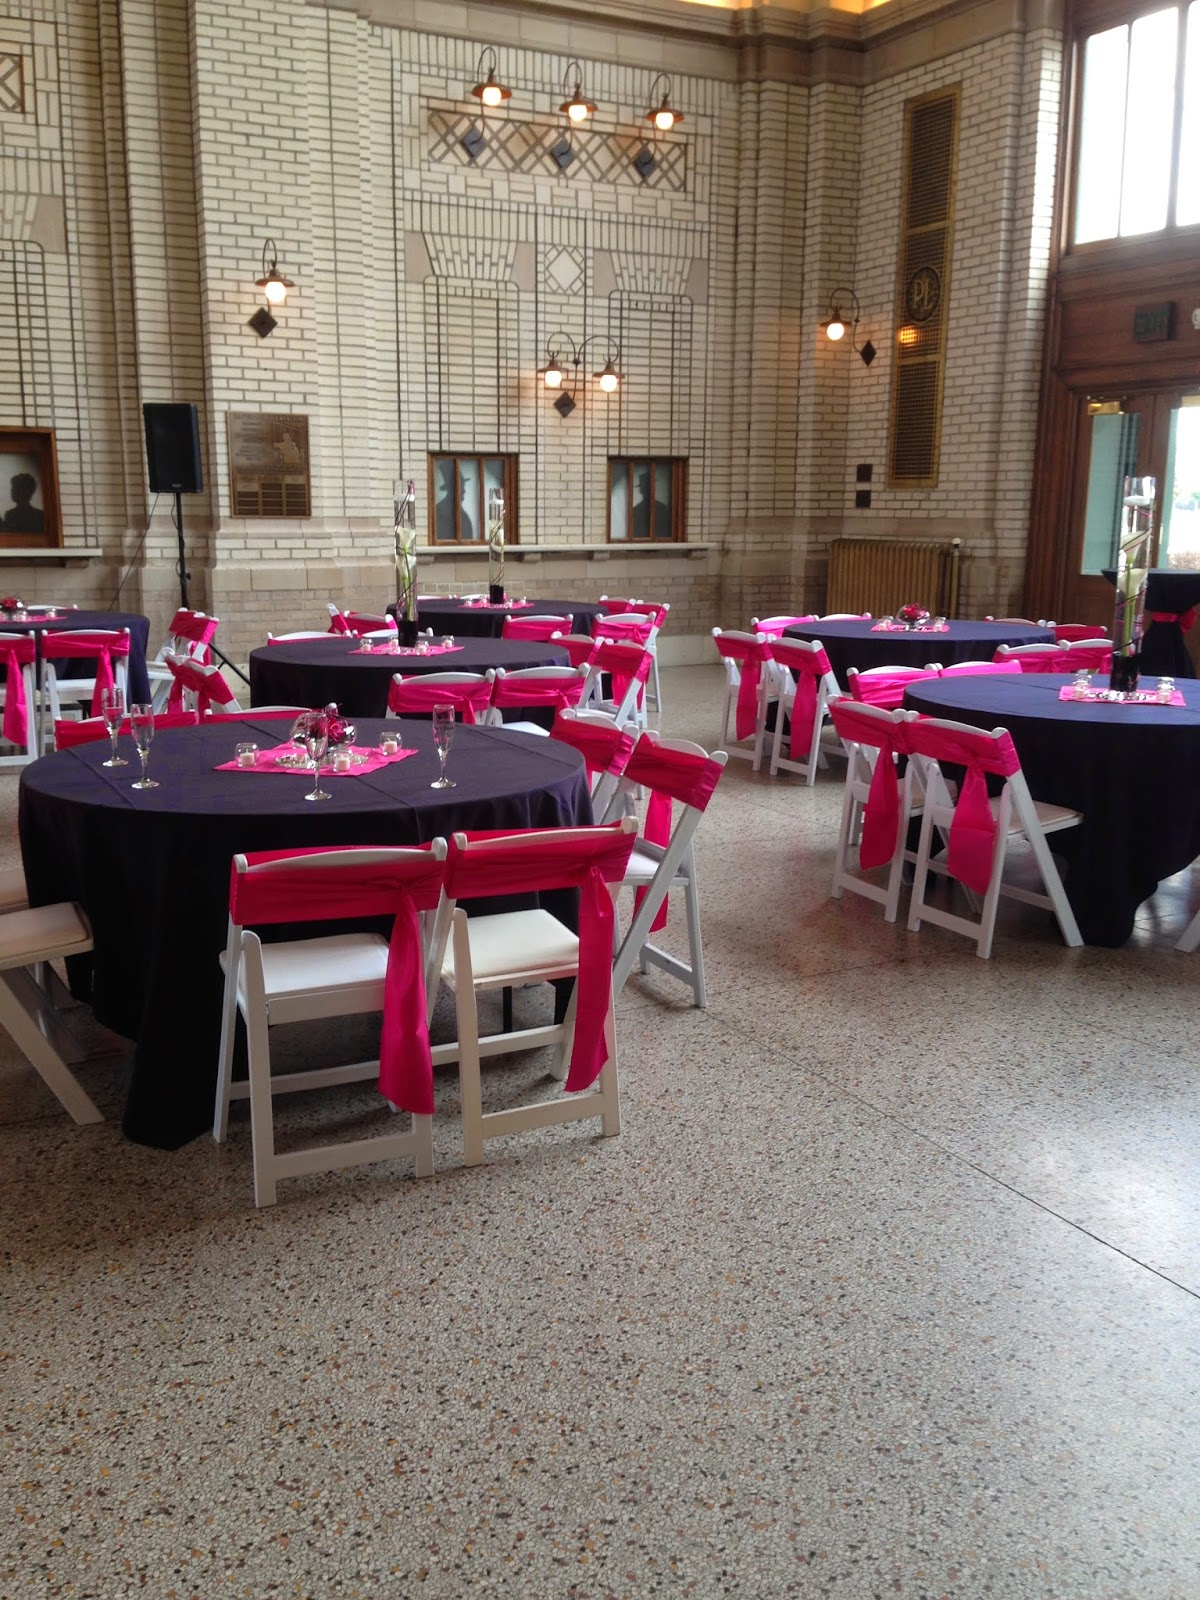 Table And Chair Rentals In Delaware Makeup Summit City Rental Linen Cover Renta Up Lighting Event Wedding Tent Party